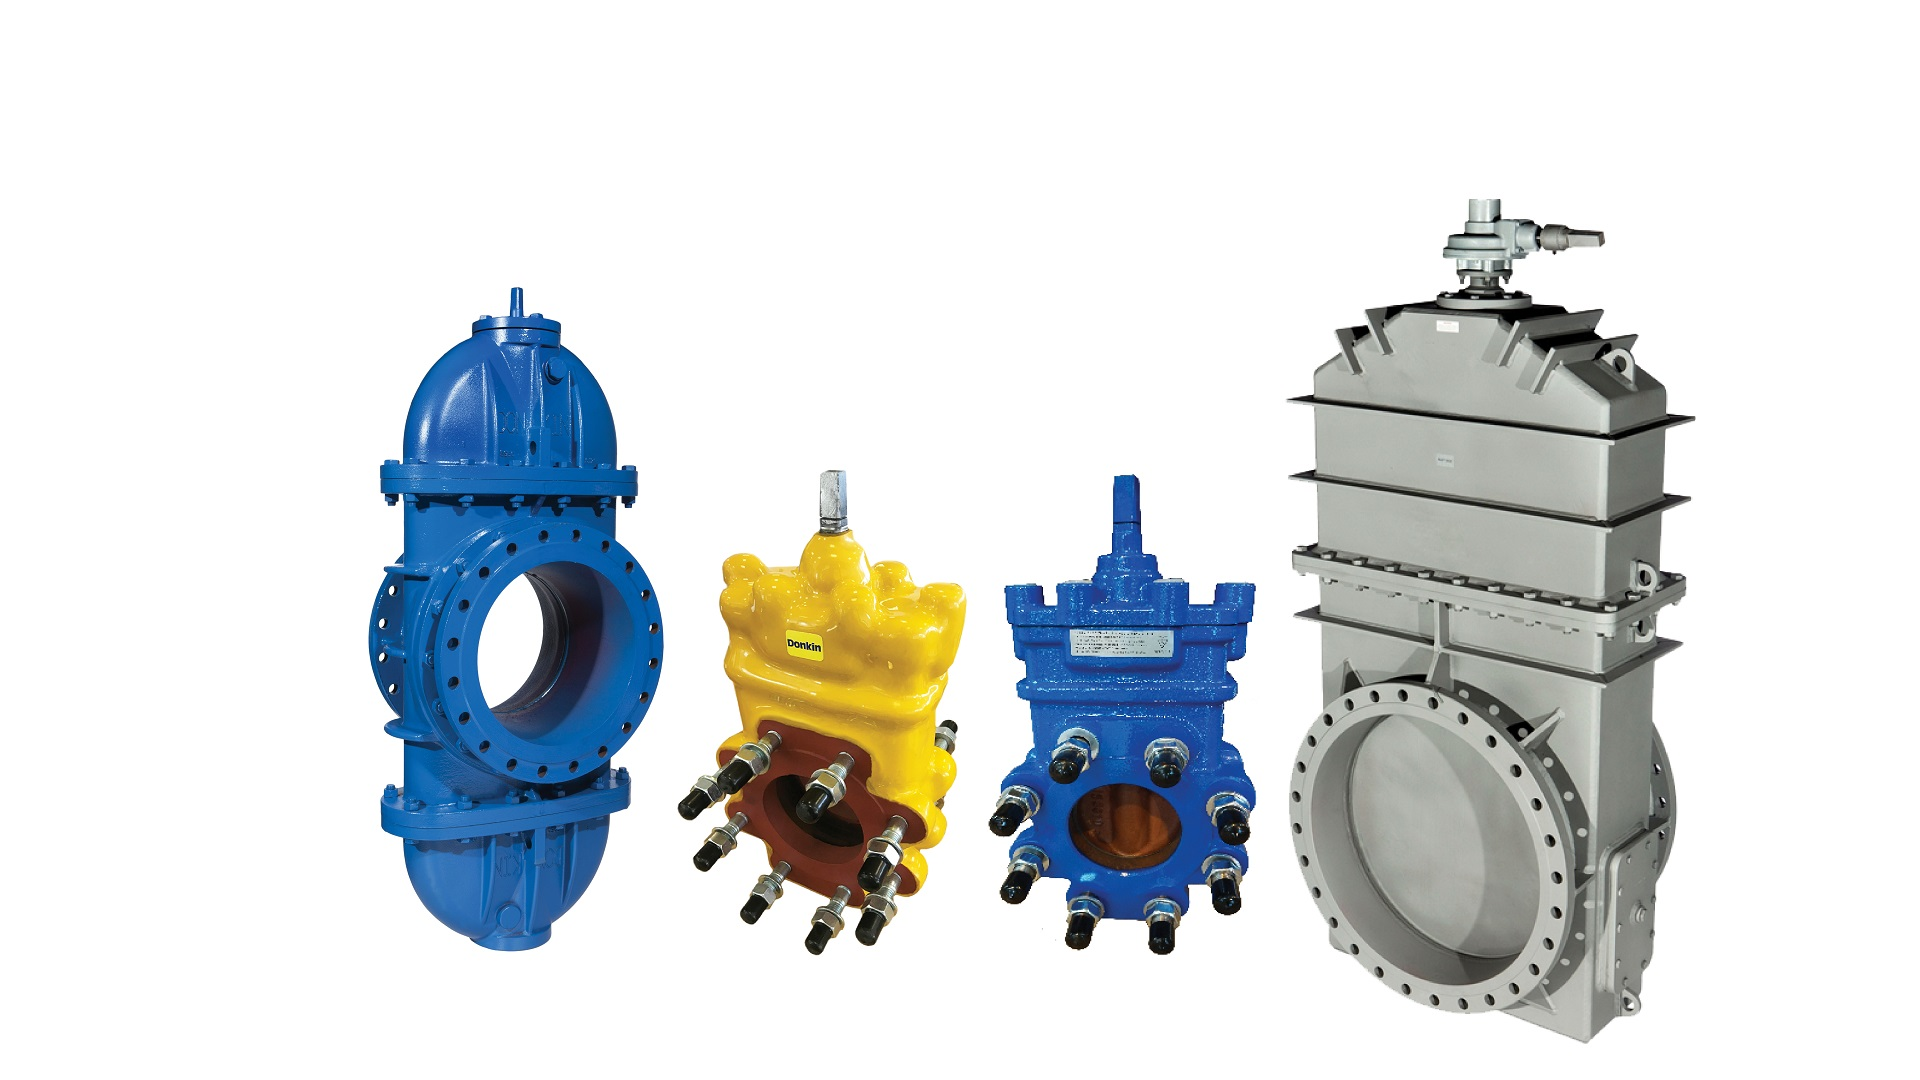 AVK gas slide valves